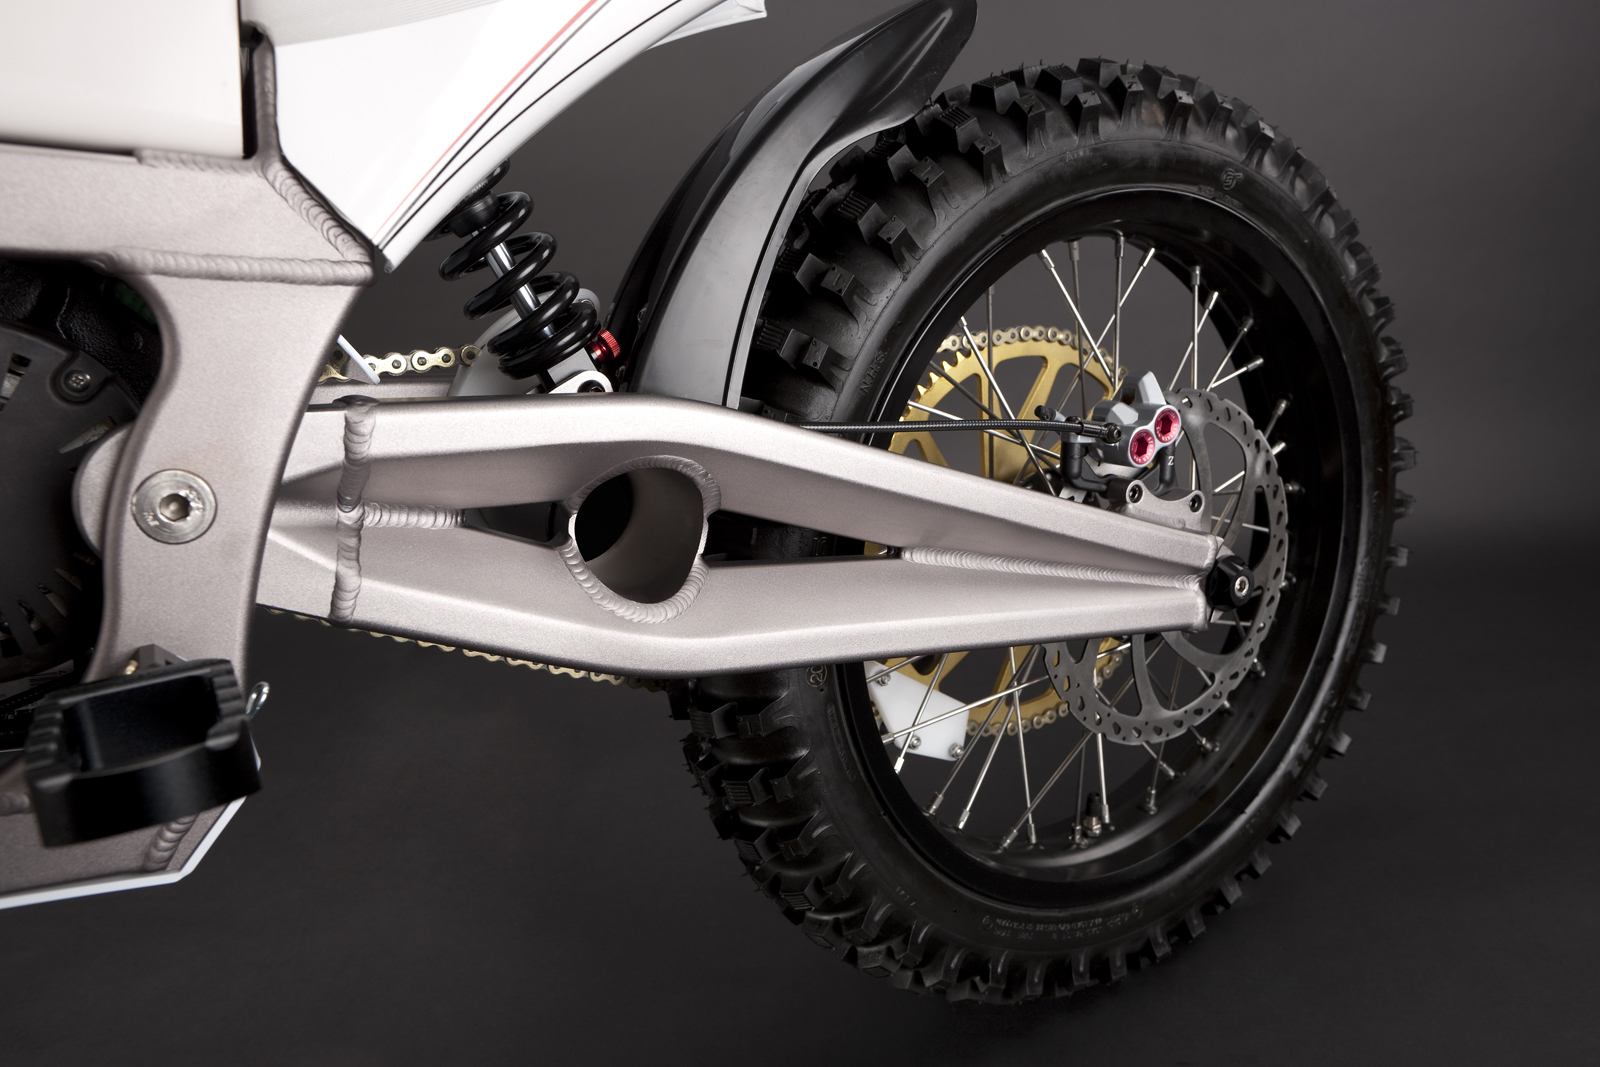 2010 Zero MX Electric Motorcycle: Rear Tire / Rear Shock